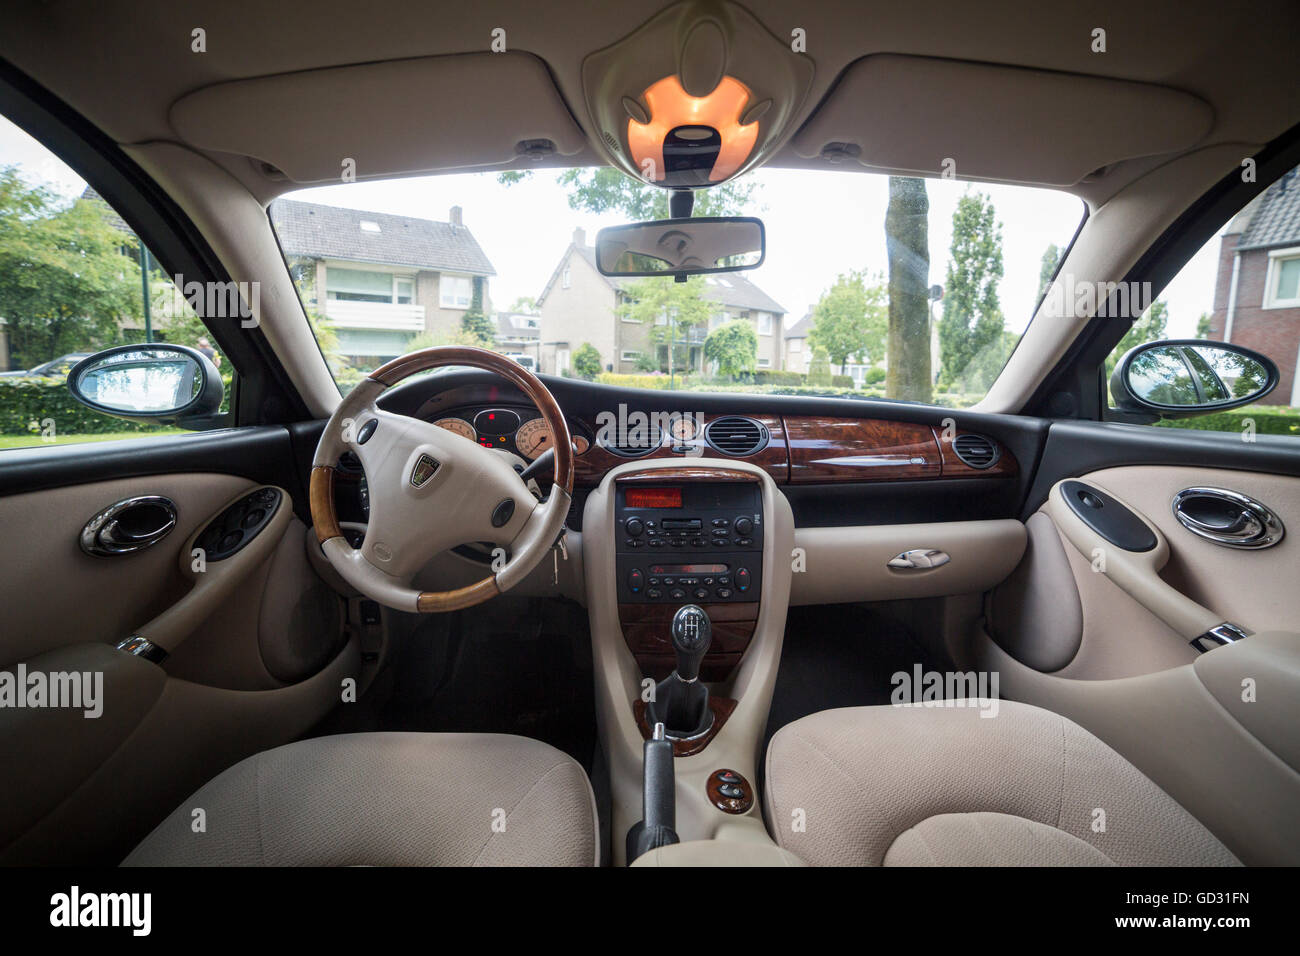 rover 75 car interior color green with a walnut dashboard stock photo 111319817 alamy. Black Bedroom Furniture Sets. Home Design Ideas